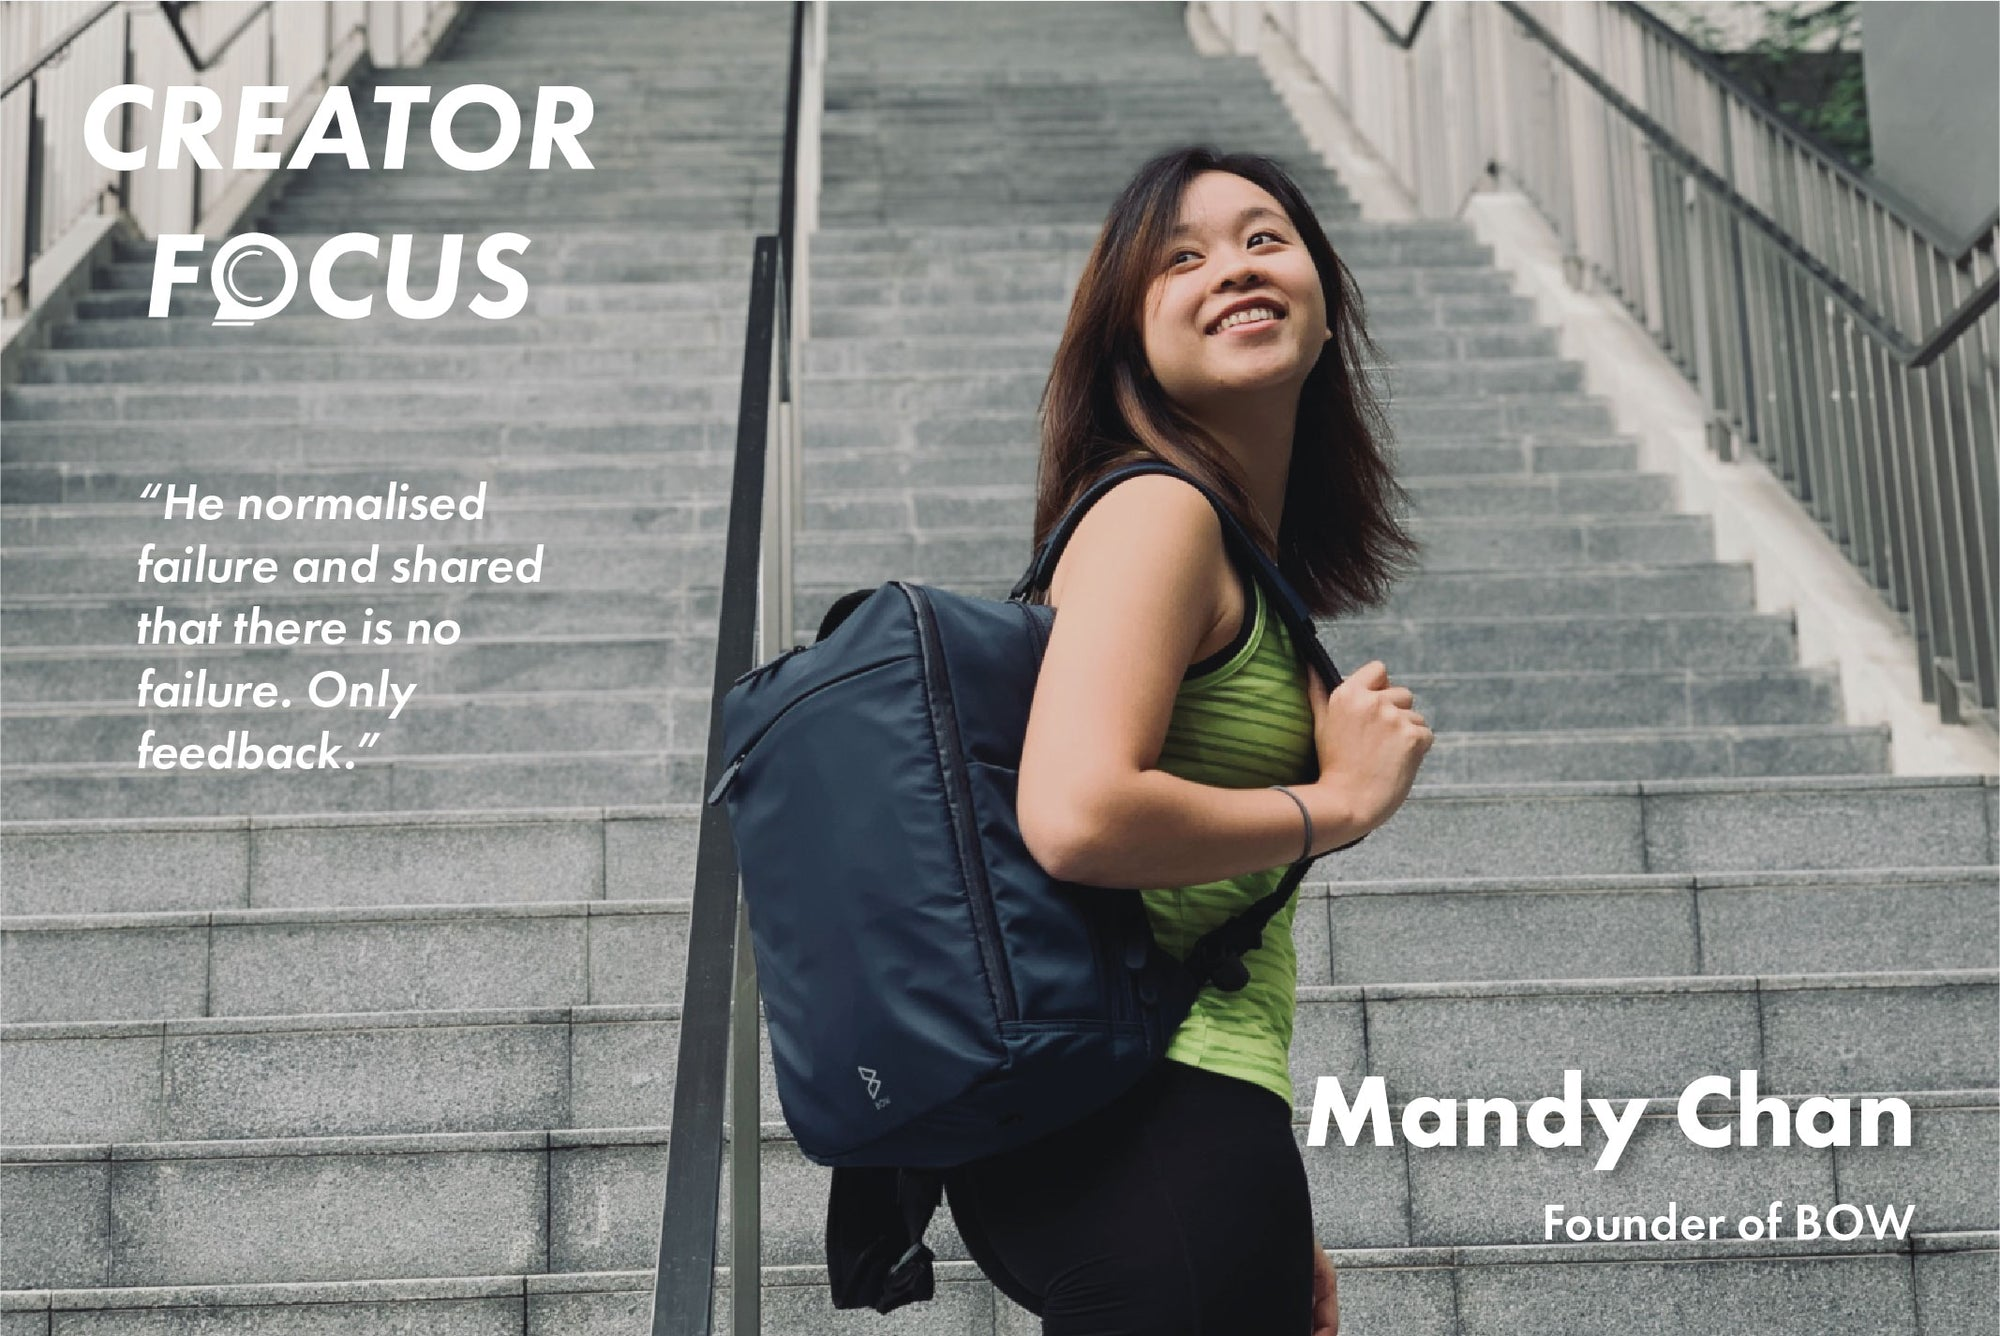 Creator Focus: Interview with Mandy Chan